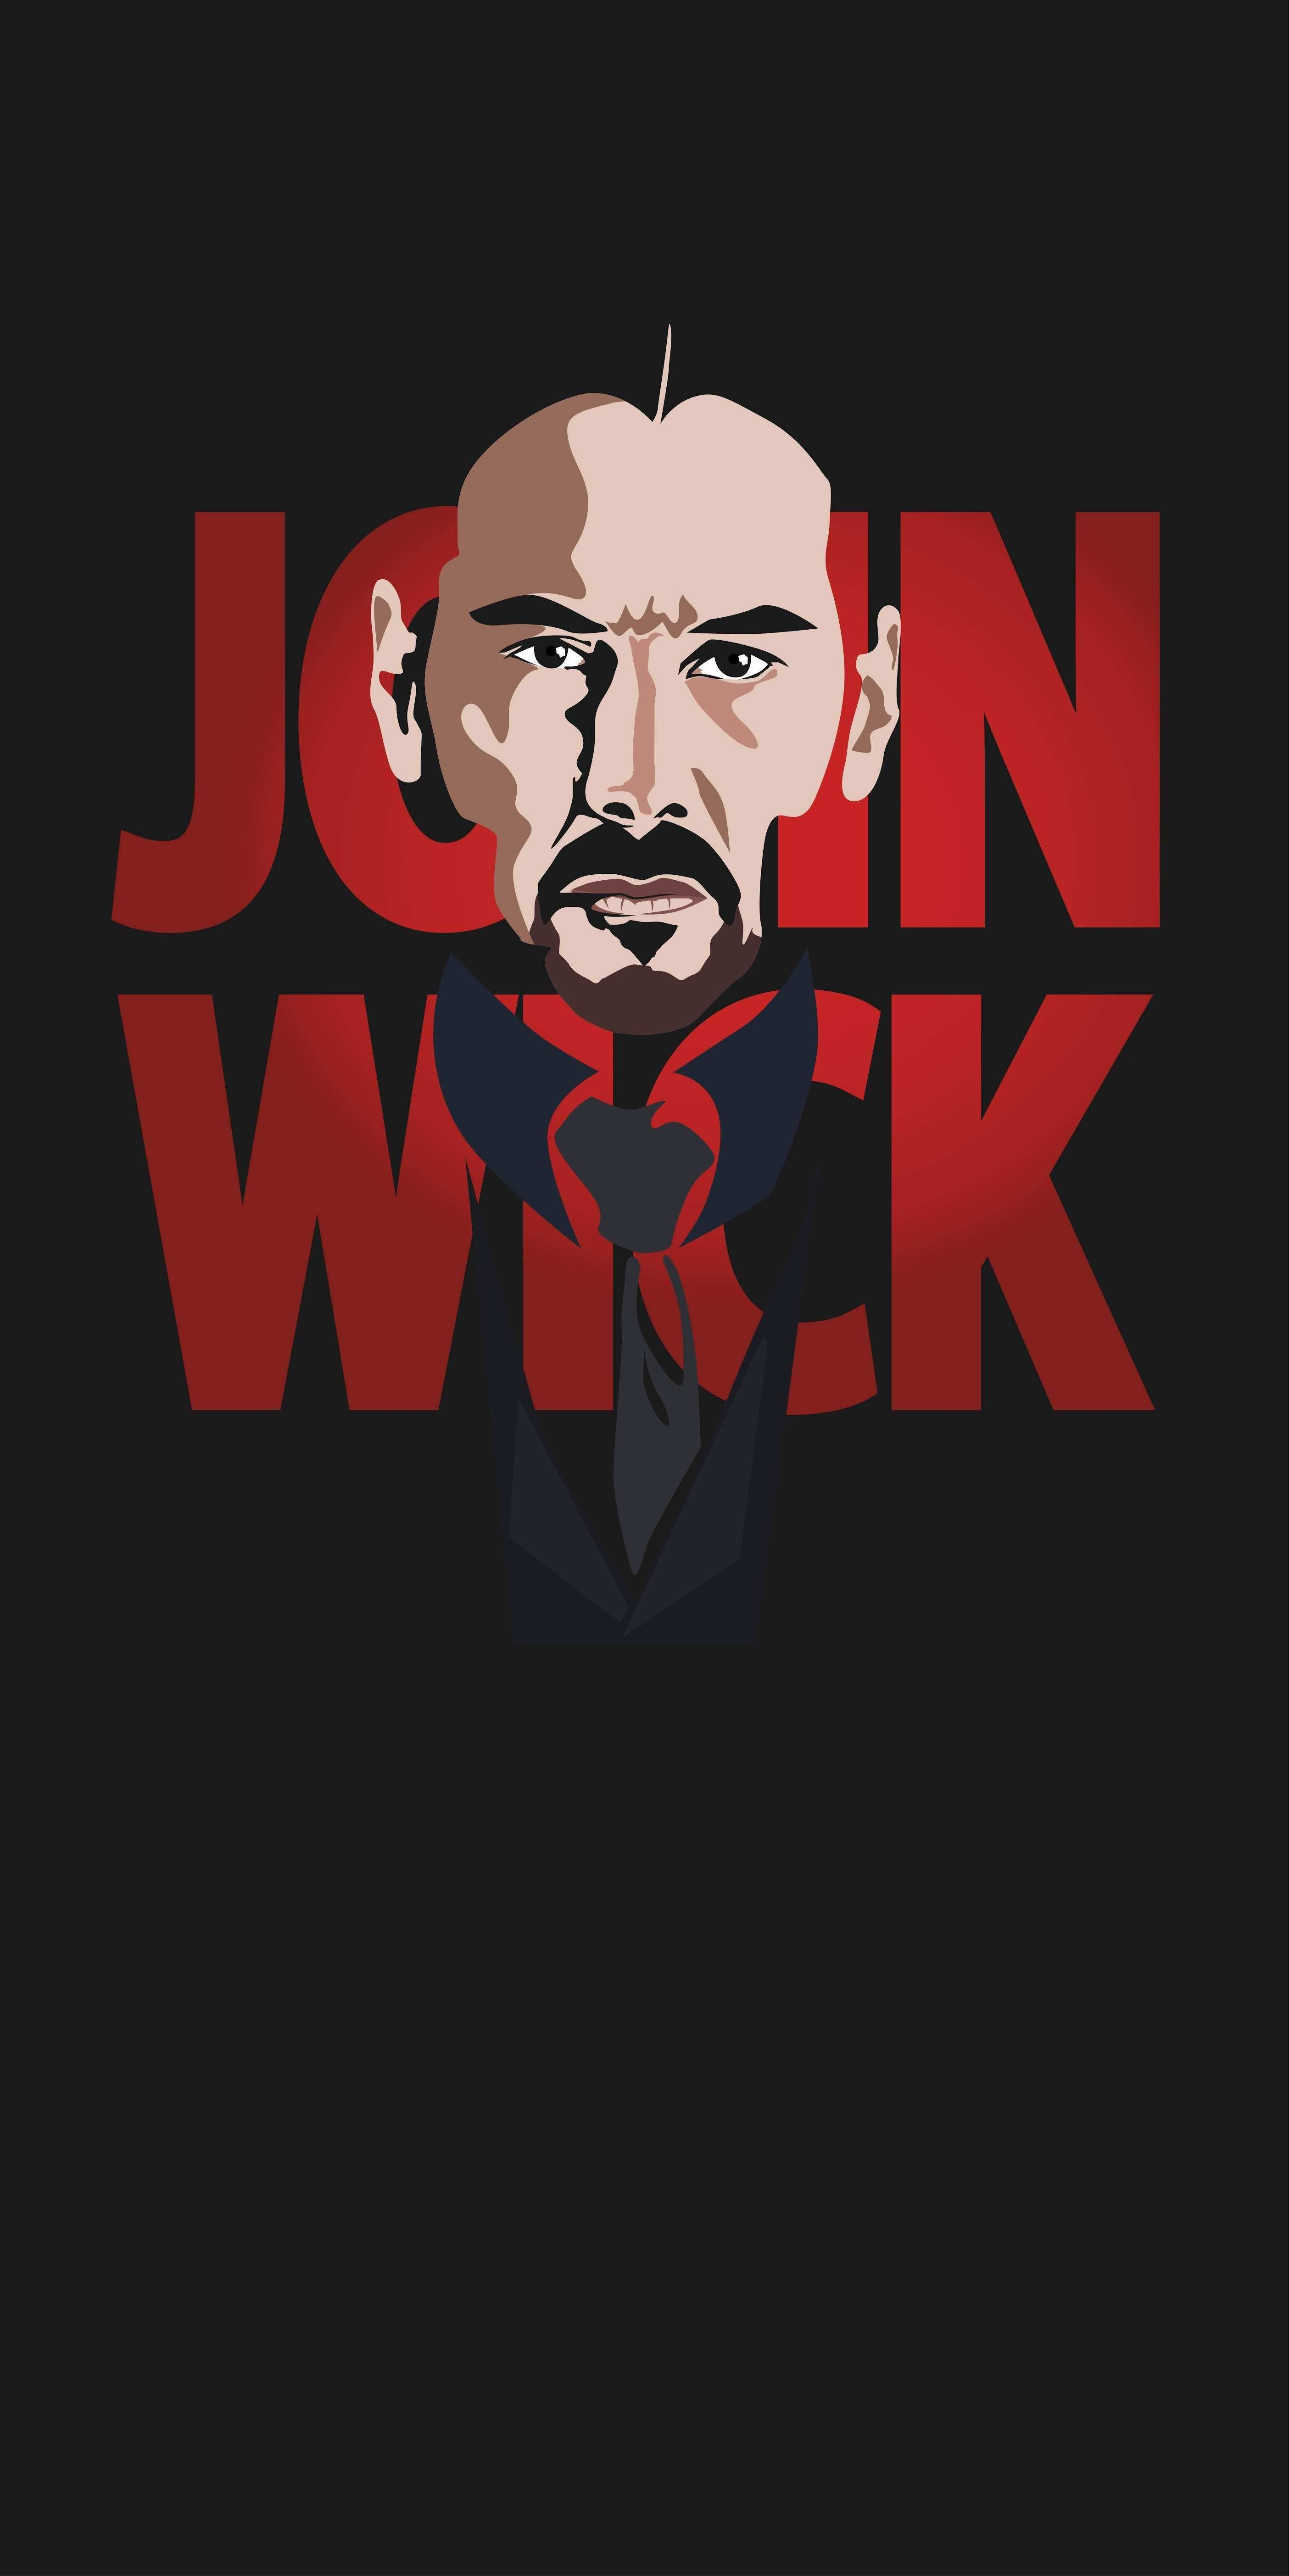 John Wick Iphone Wallpaper John Wick Hd Iphone Wallpaper Movie Keanu Reeves John Wick